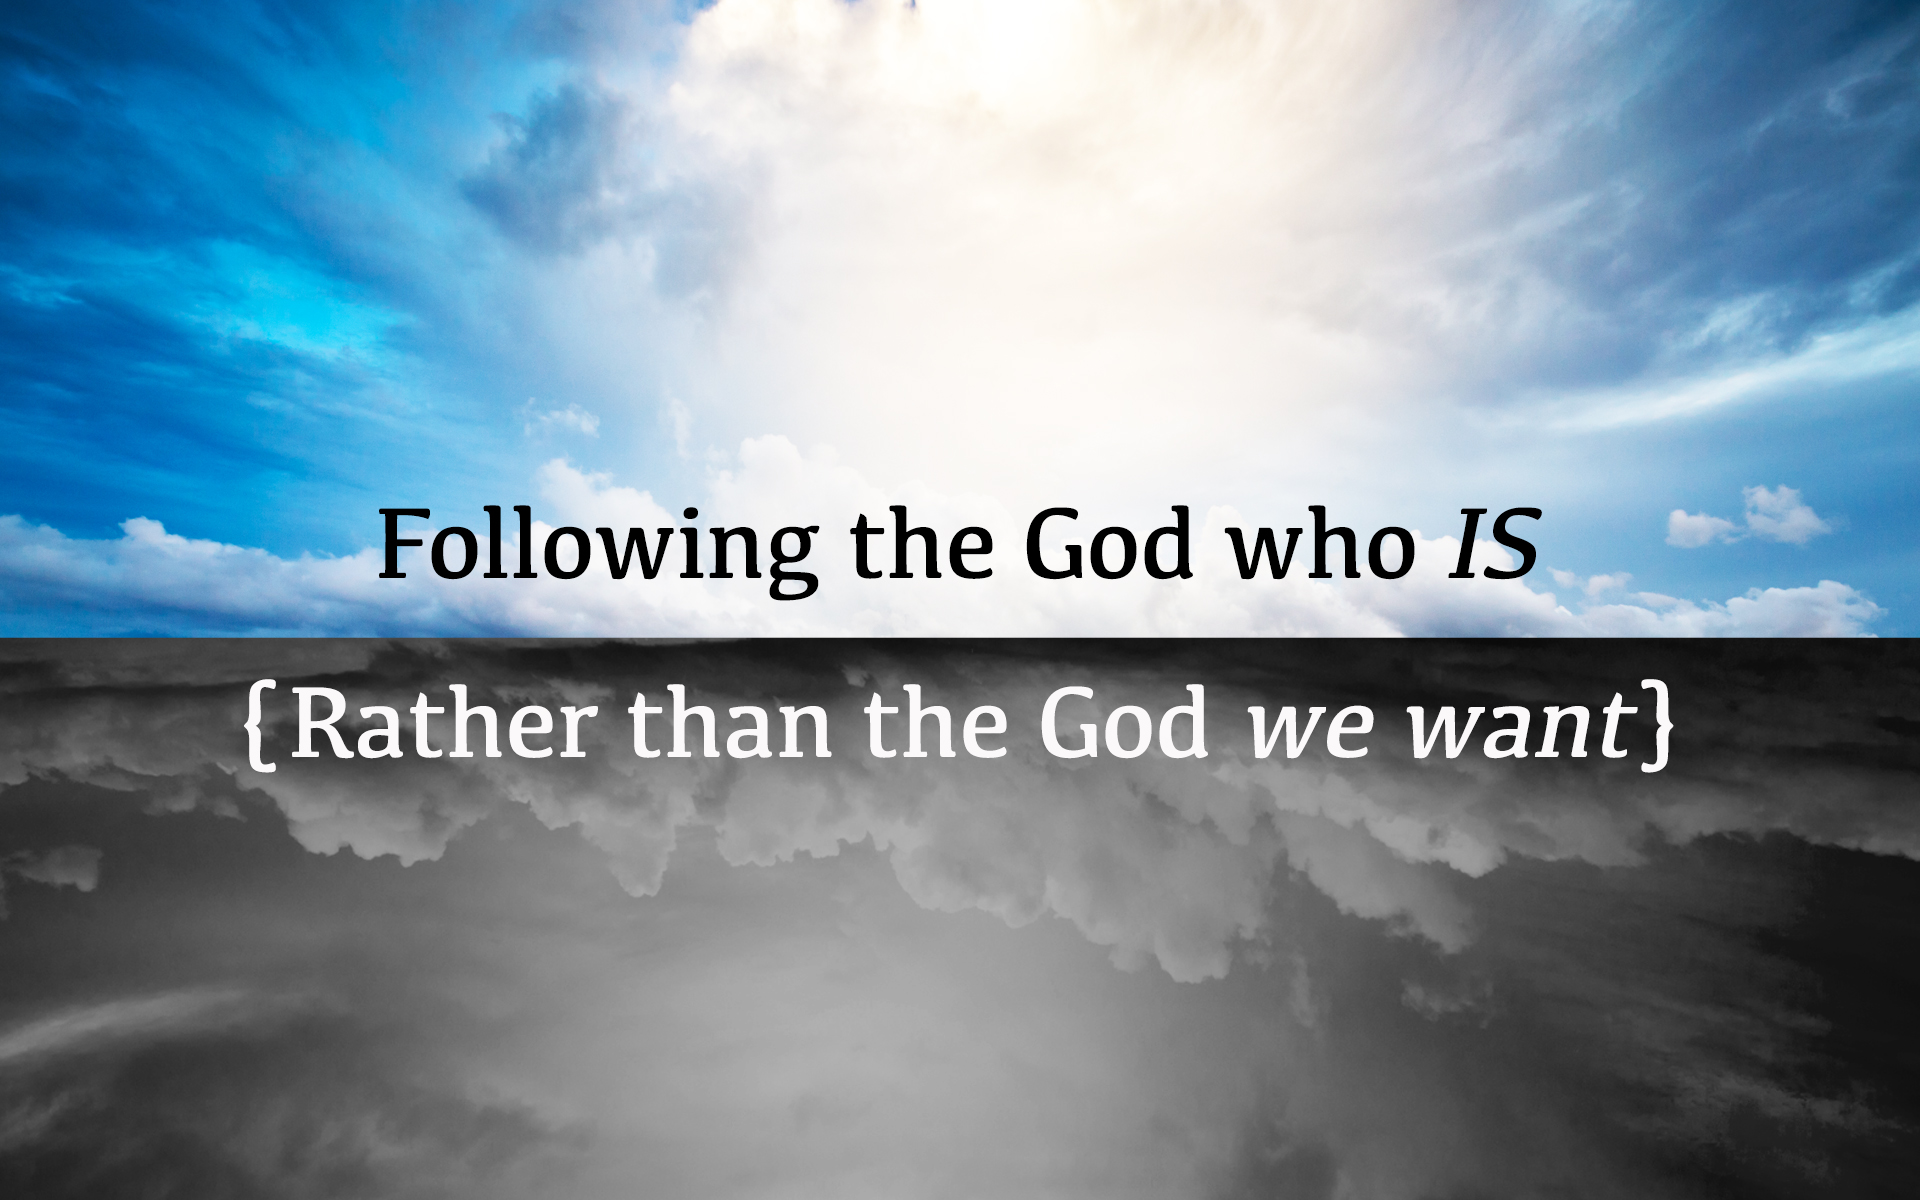 Following the God who is rather than the God we want.